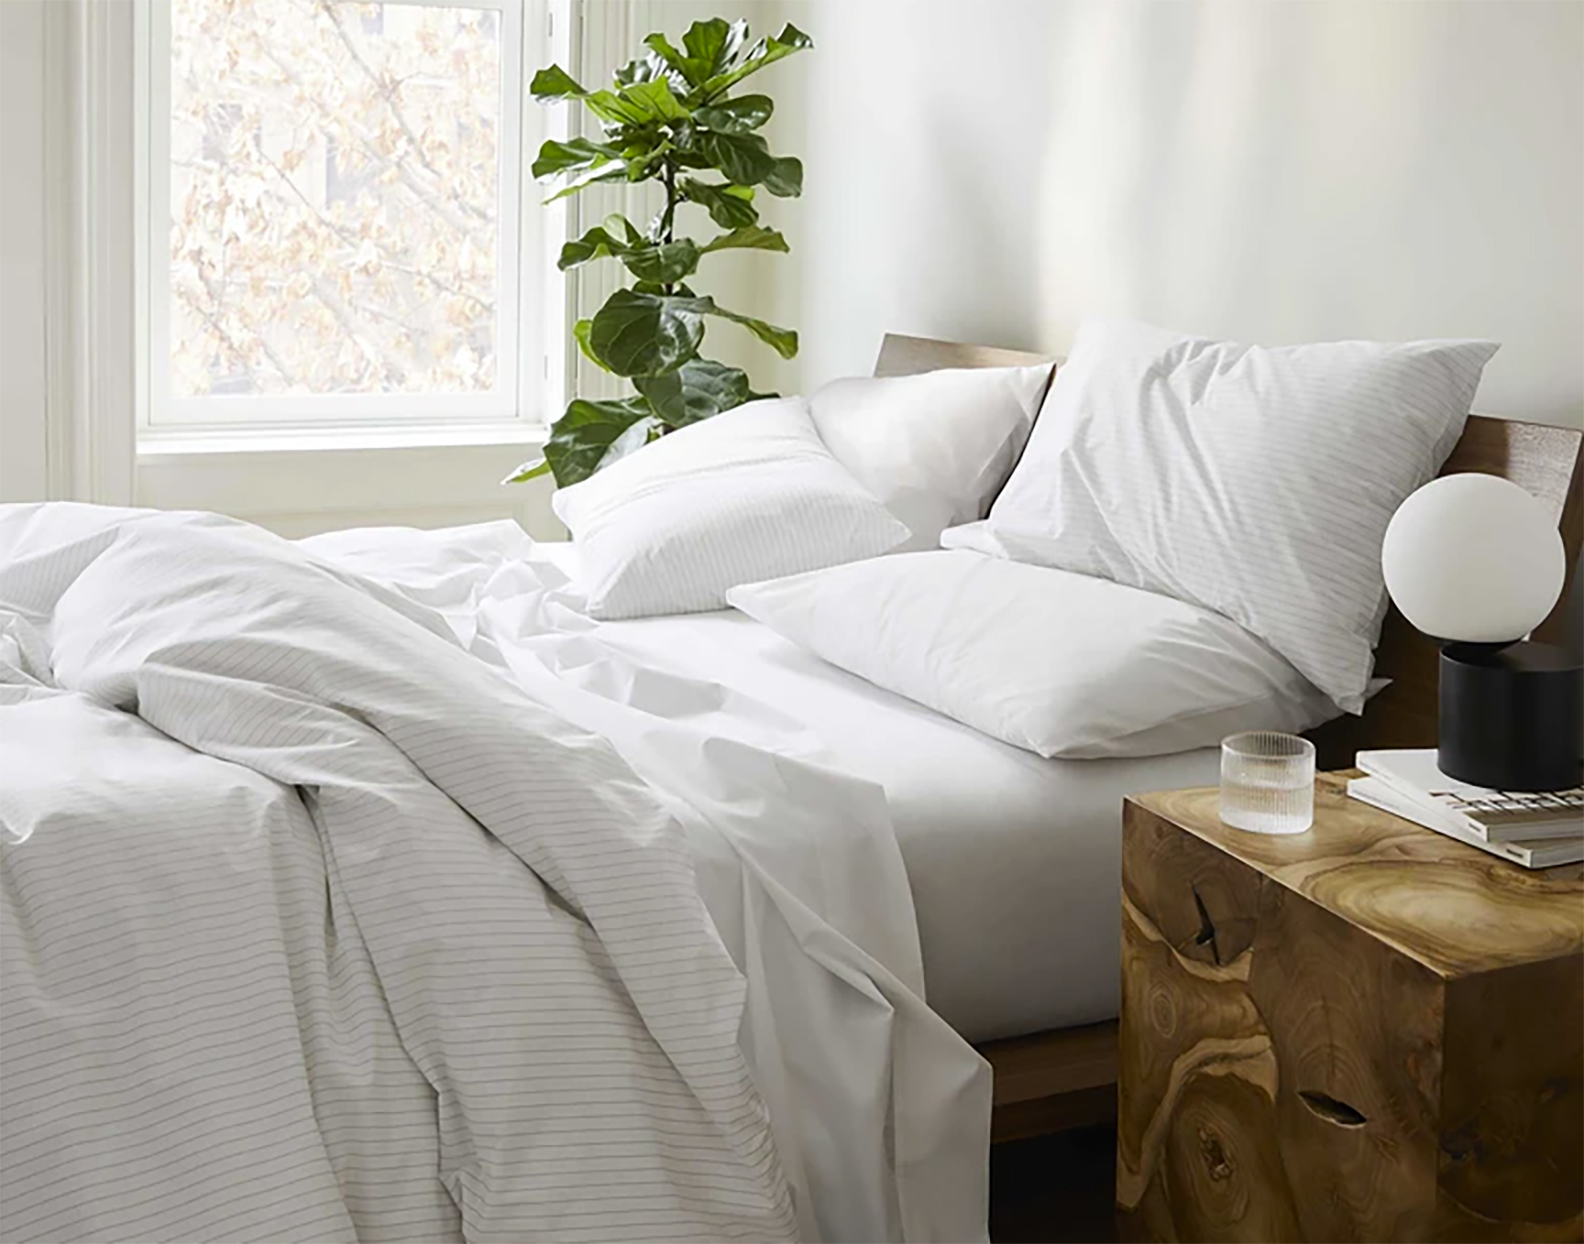 brooklinen cooling percale sheets in a nicely styled bedroom